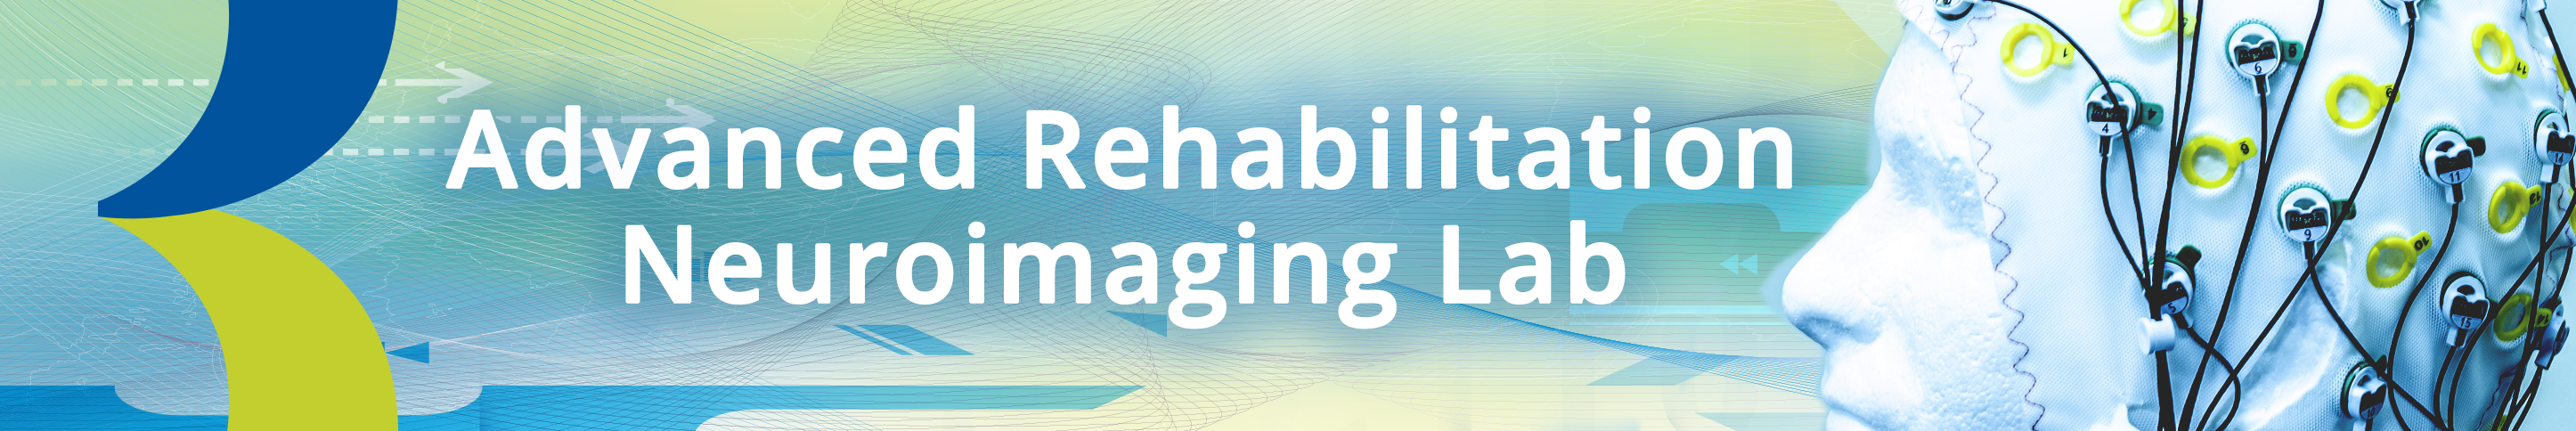 Advanced Rehabilitation Neuroimaging Lab Banner